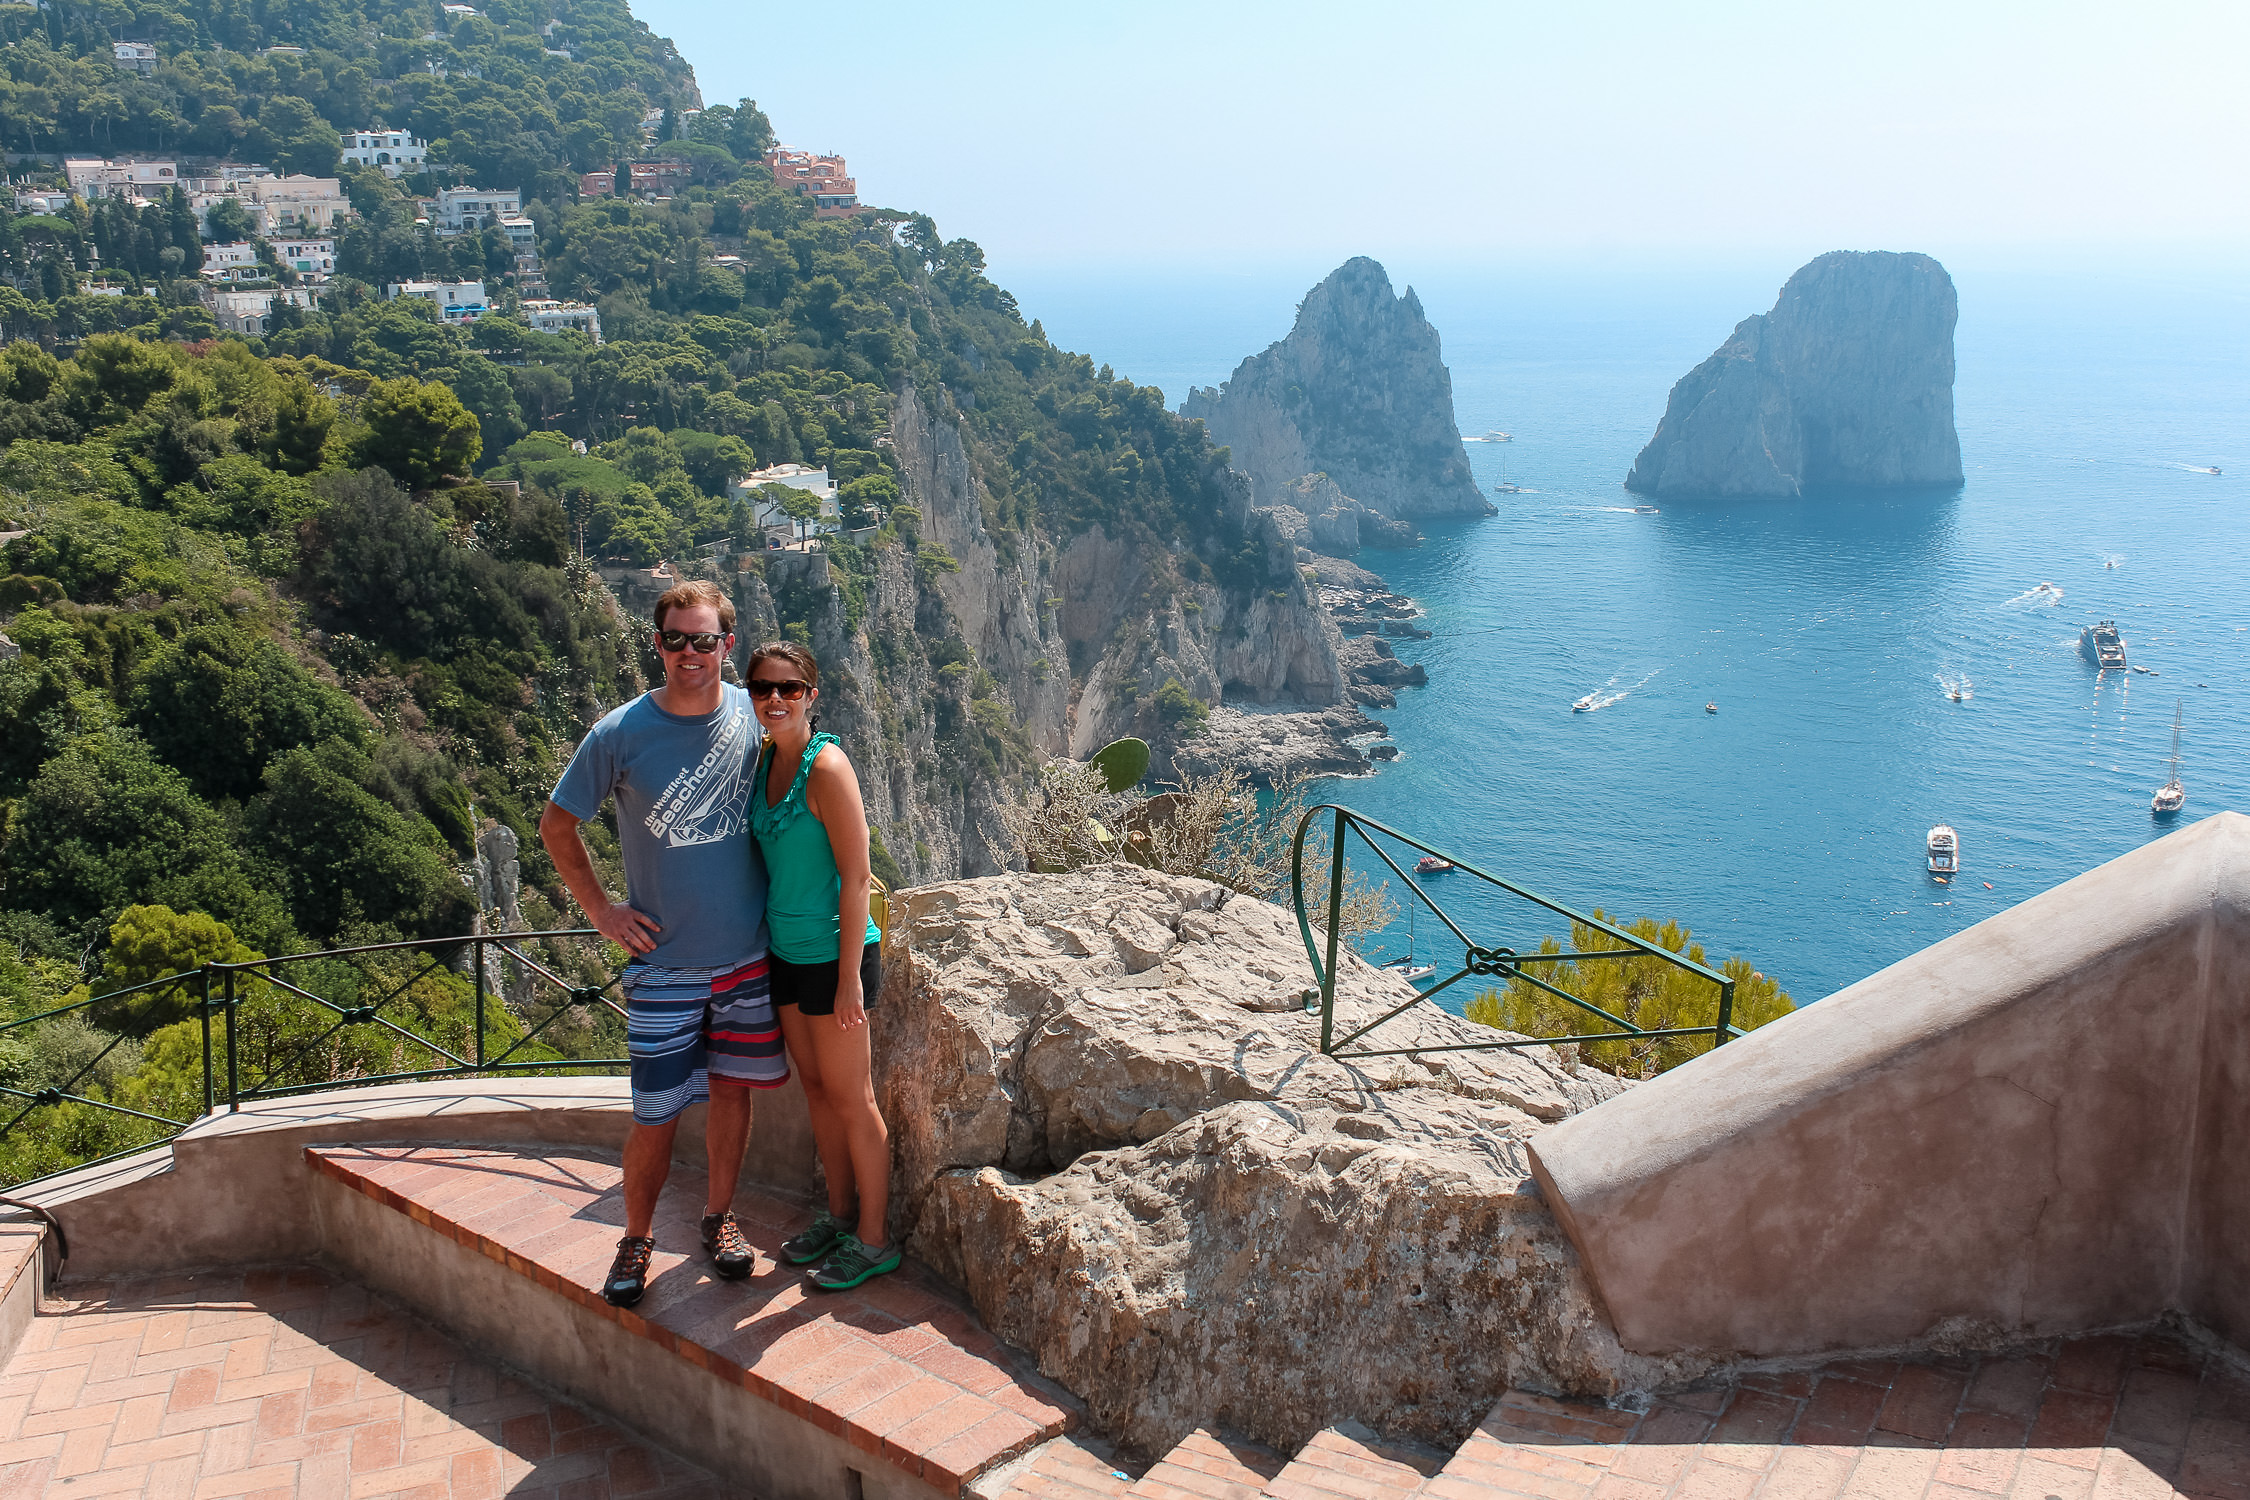 Couple-Honeymoon-Capri-Amalfi-Coast-Italy_0001